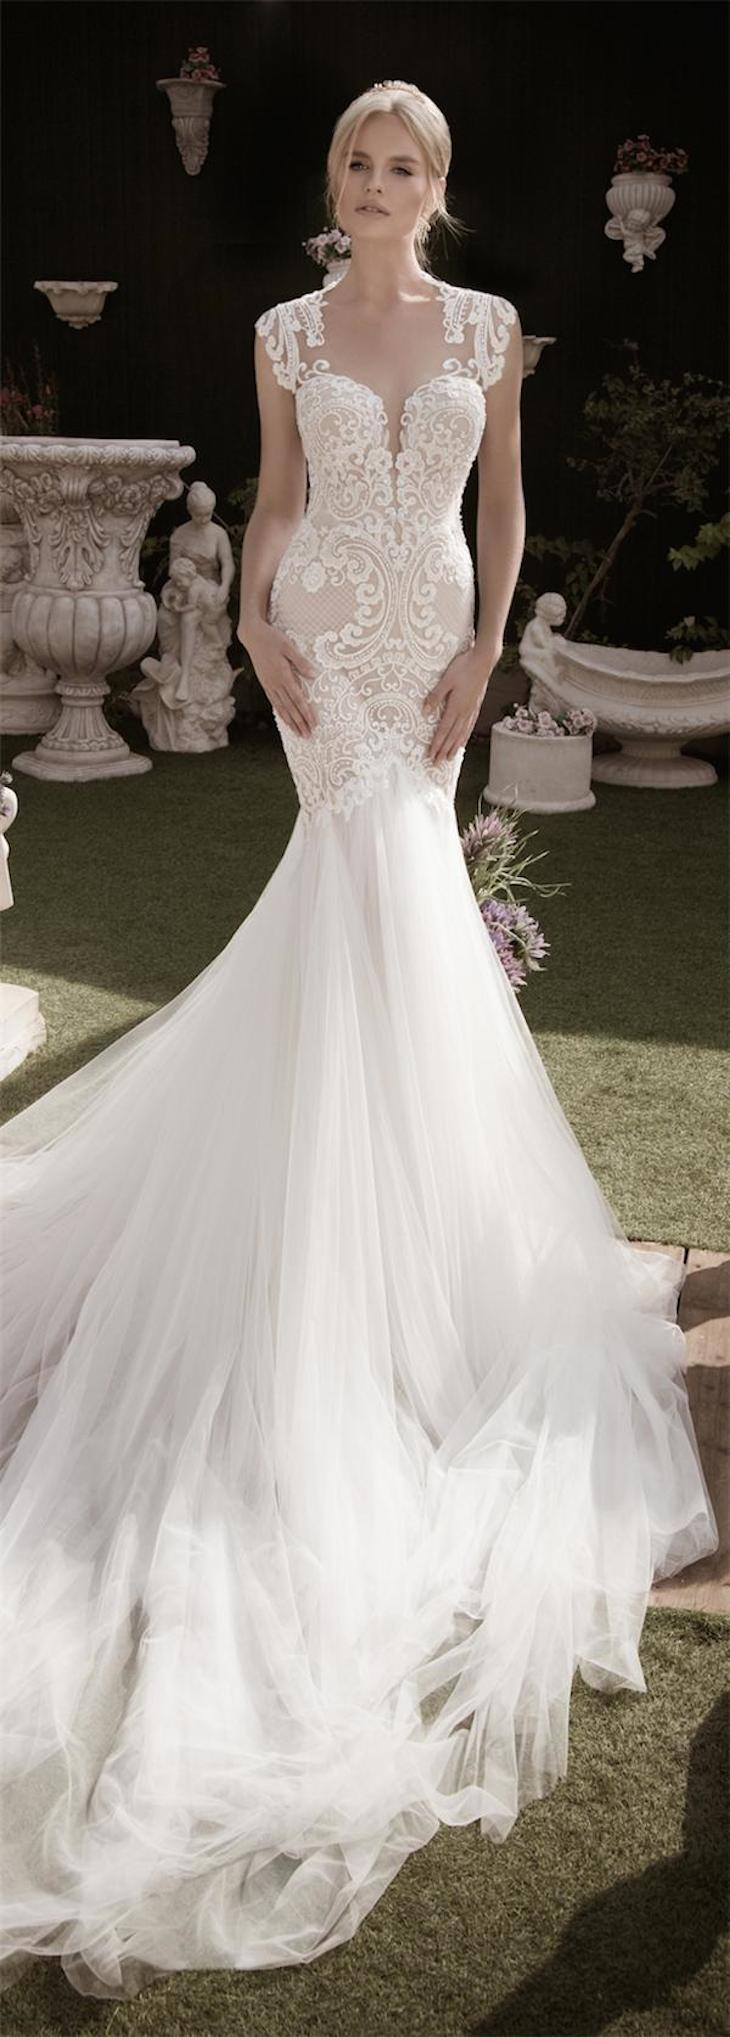 Top 10 popular wedding dresses for 2016 top inspired for Top wedding dress designs